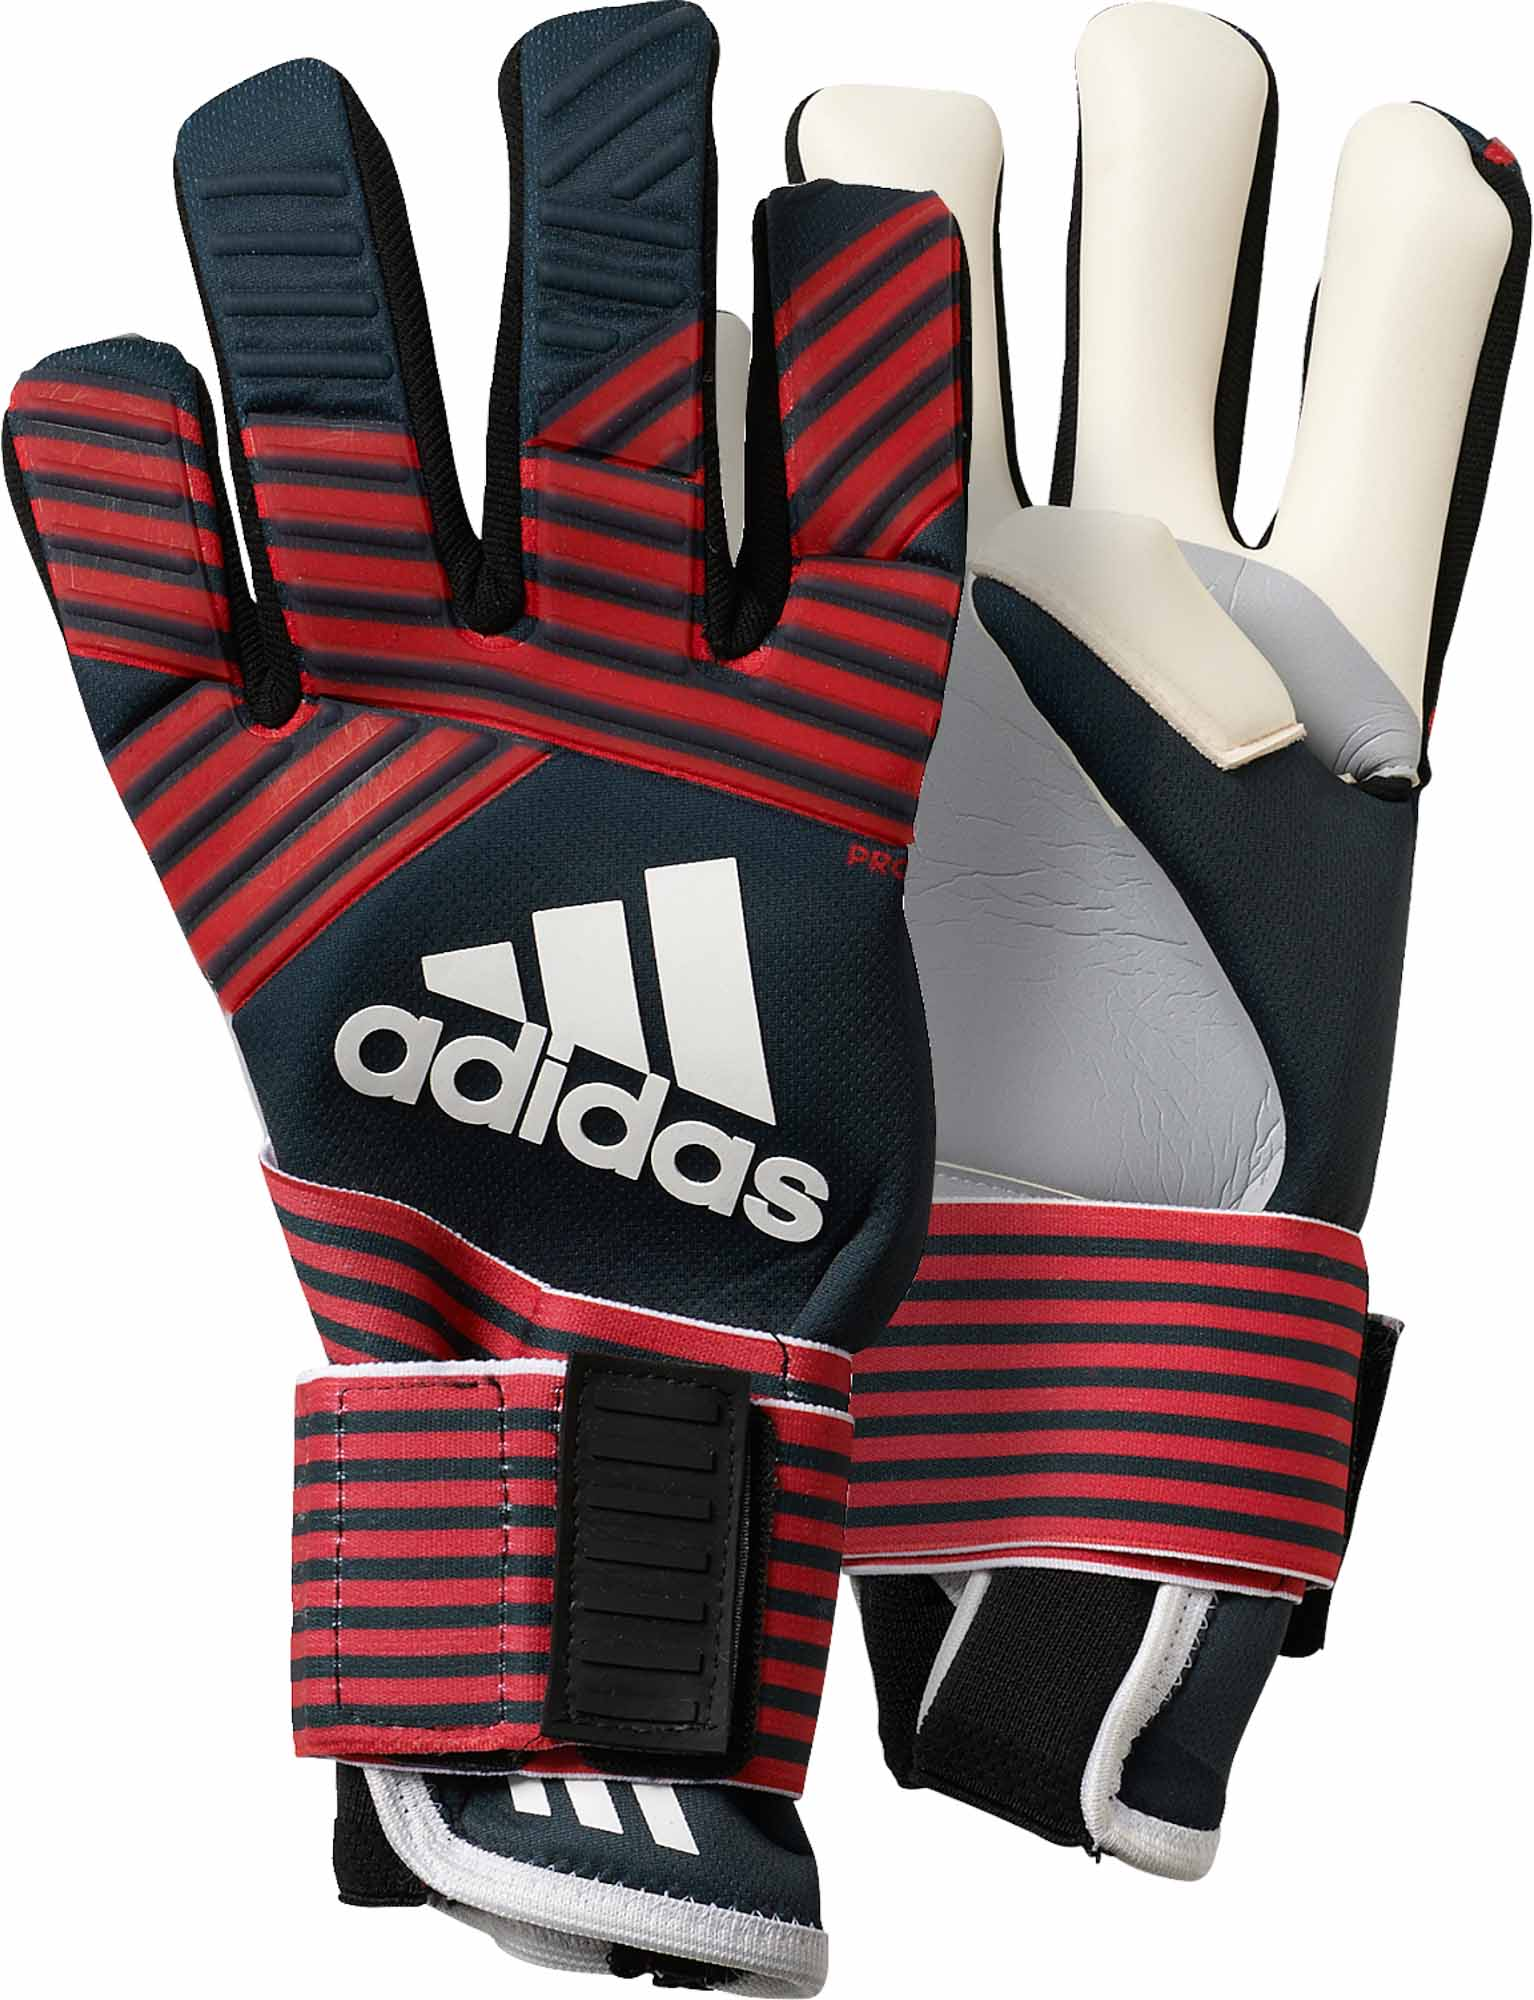 new styles 84aff 5933b adidas ACE Trans Pro Goalkeeper Gloves – Manuel Neuer – Black/FCB True Red